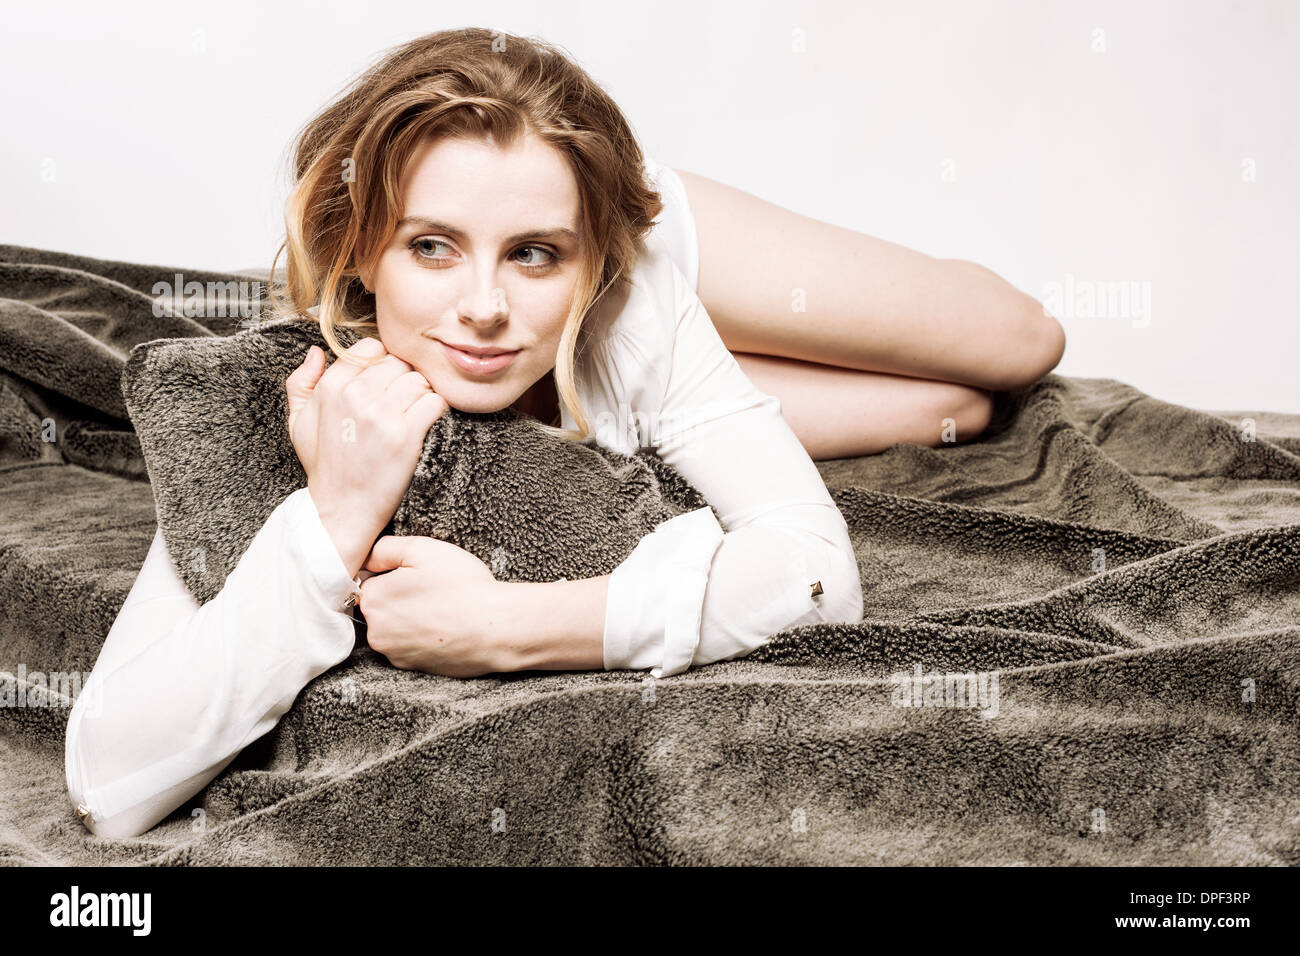 Woman clutching pillow in bed - Stock Image